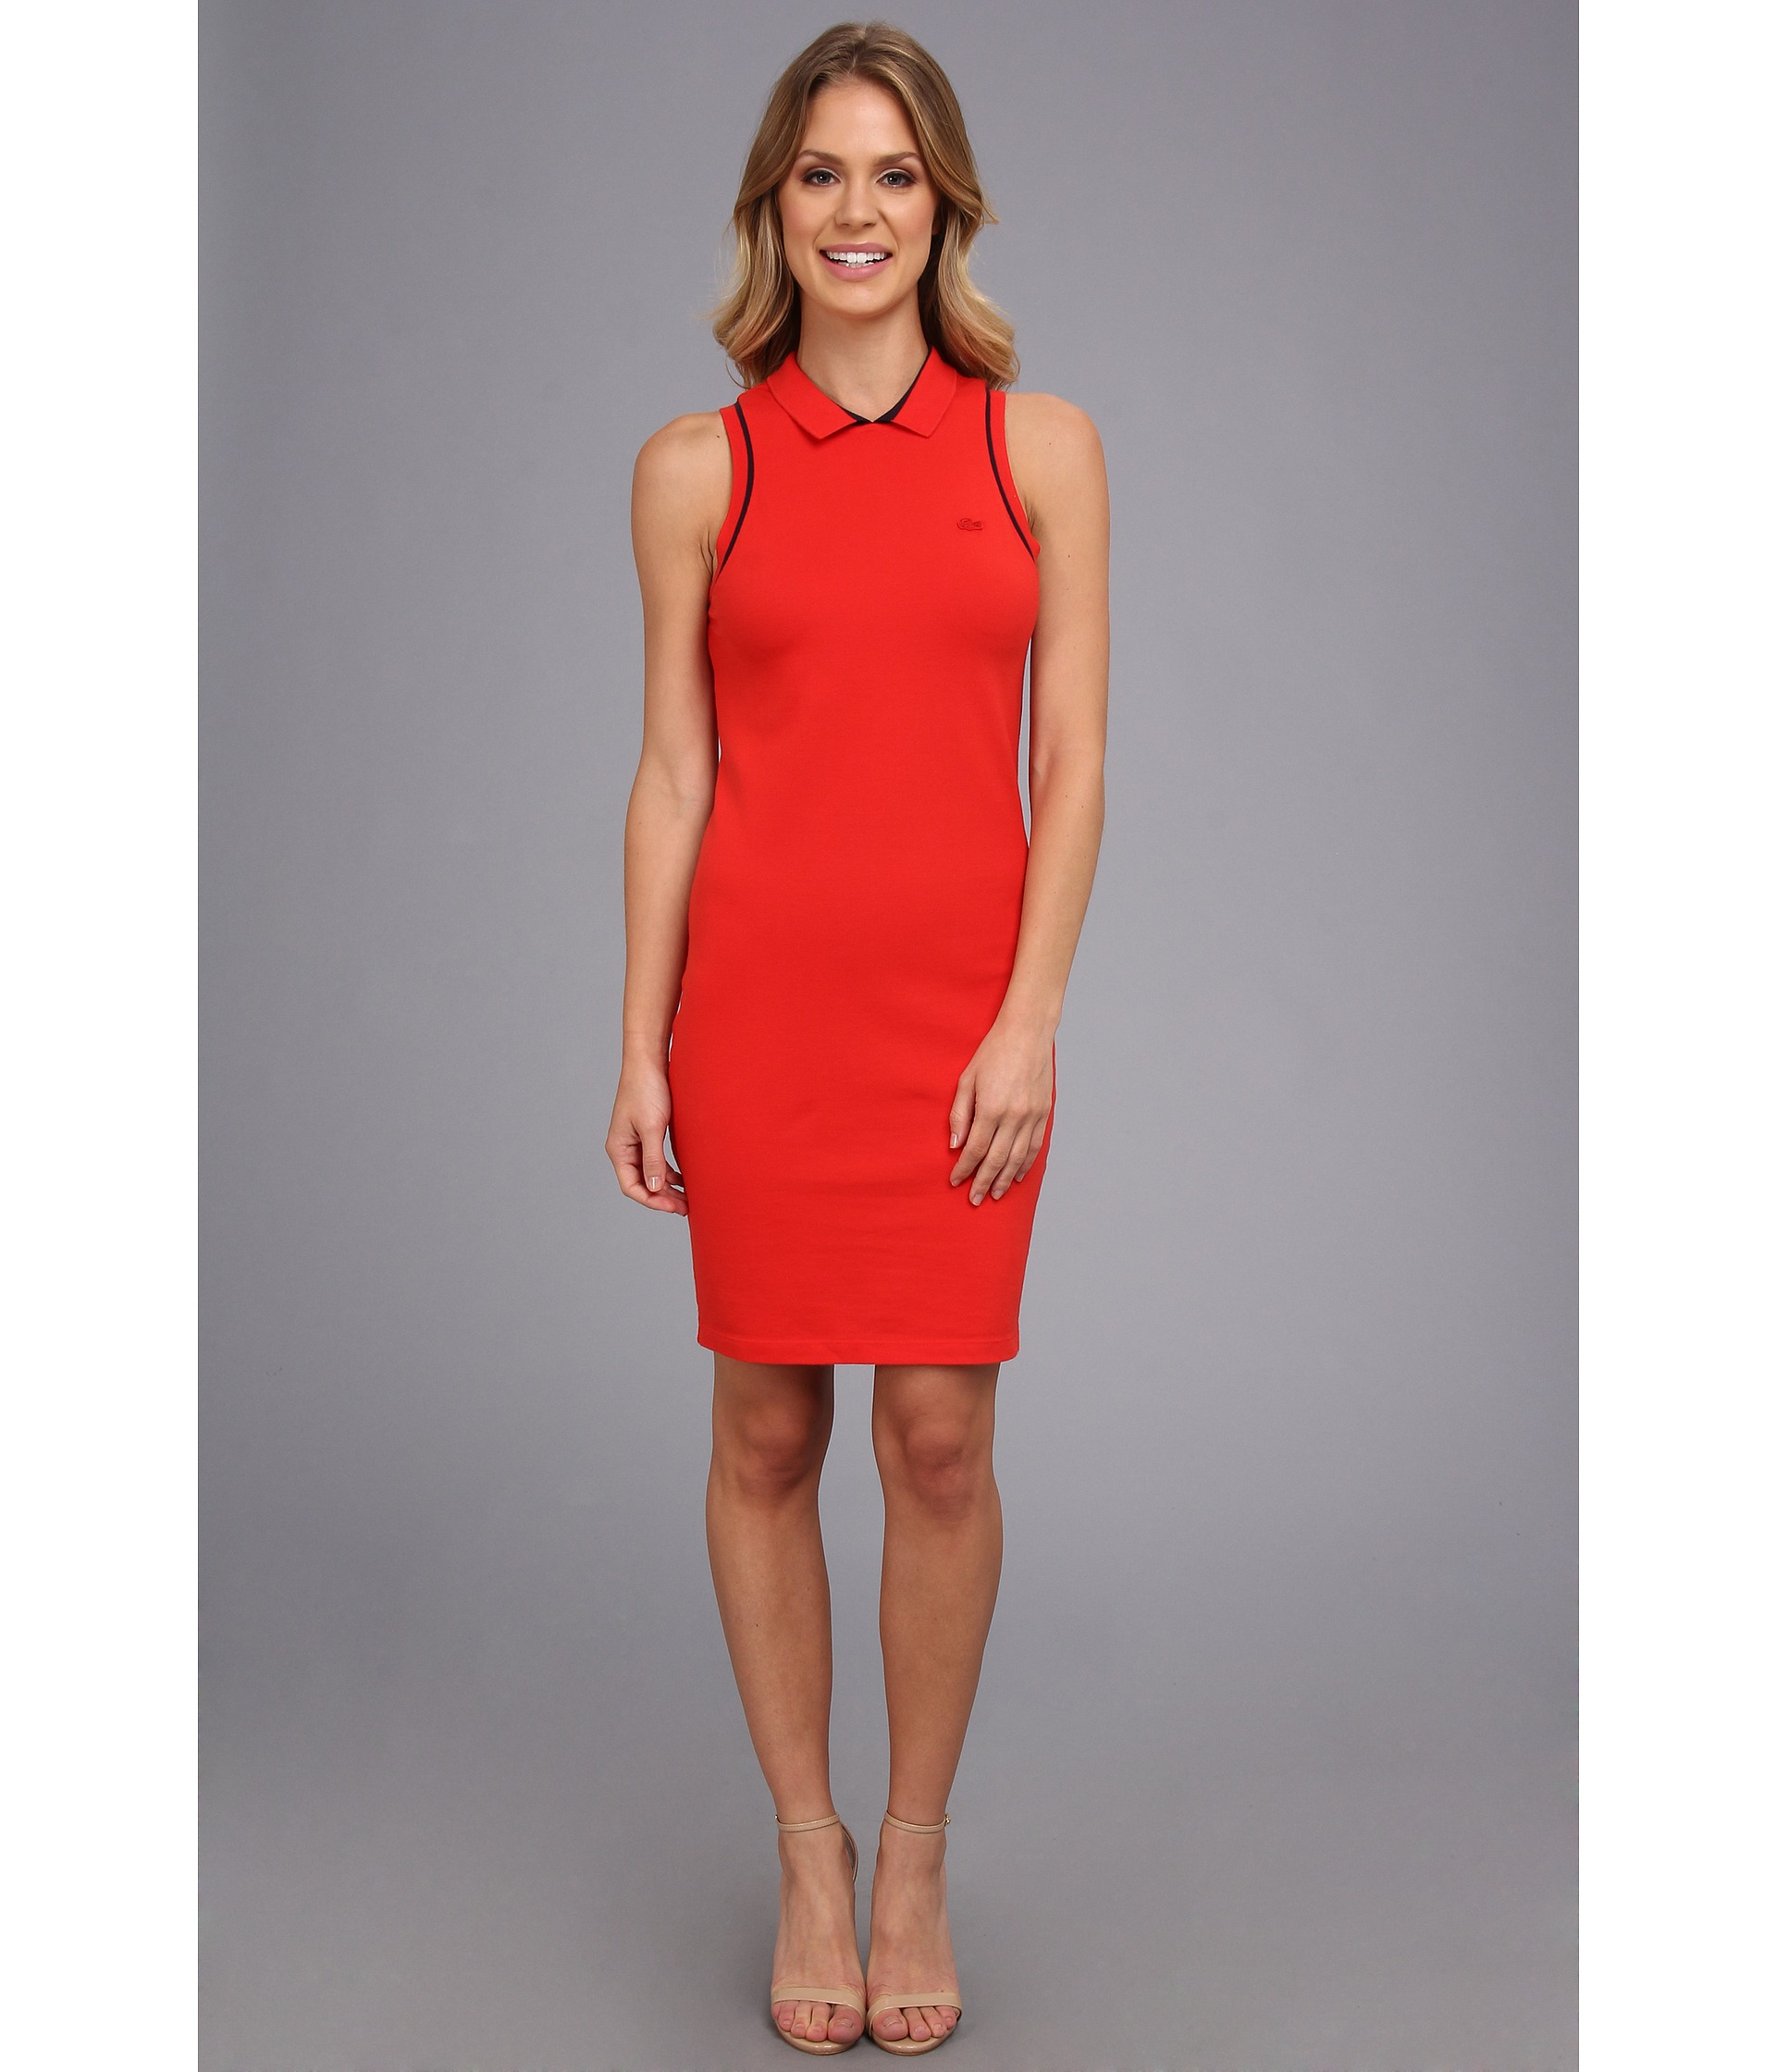 aa45c6103bcc76 Lyst - Lacoste Sleeveless Pique Polo Dress in Red